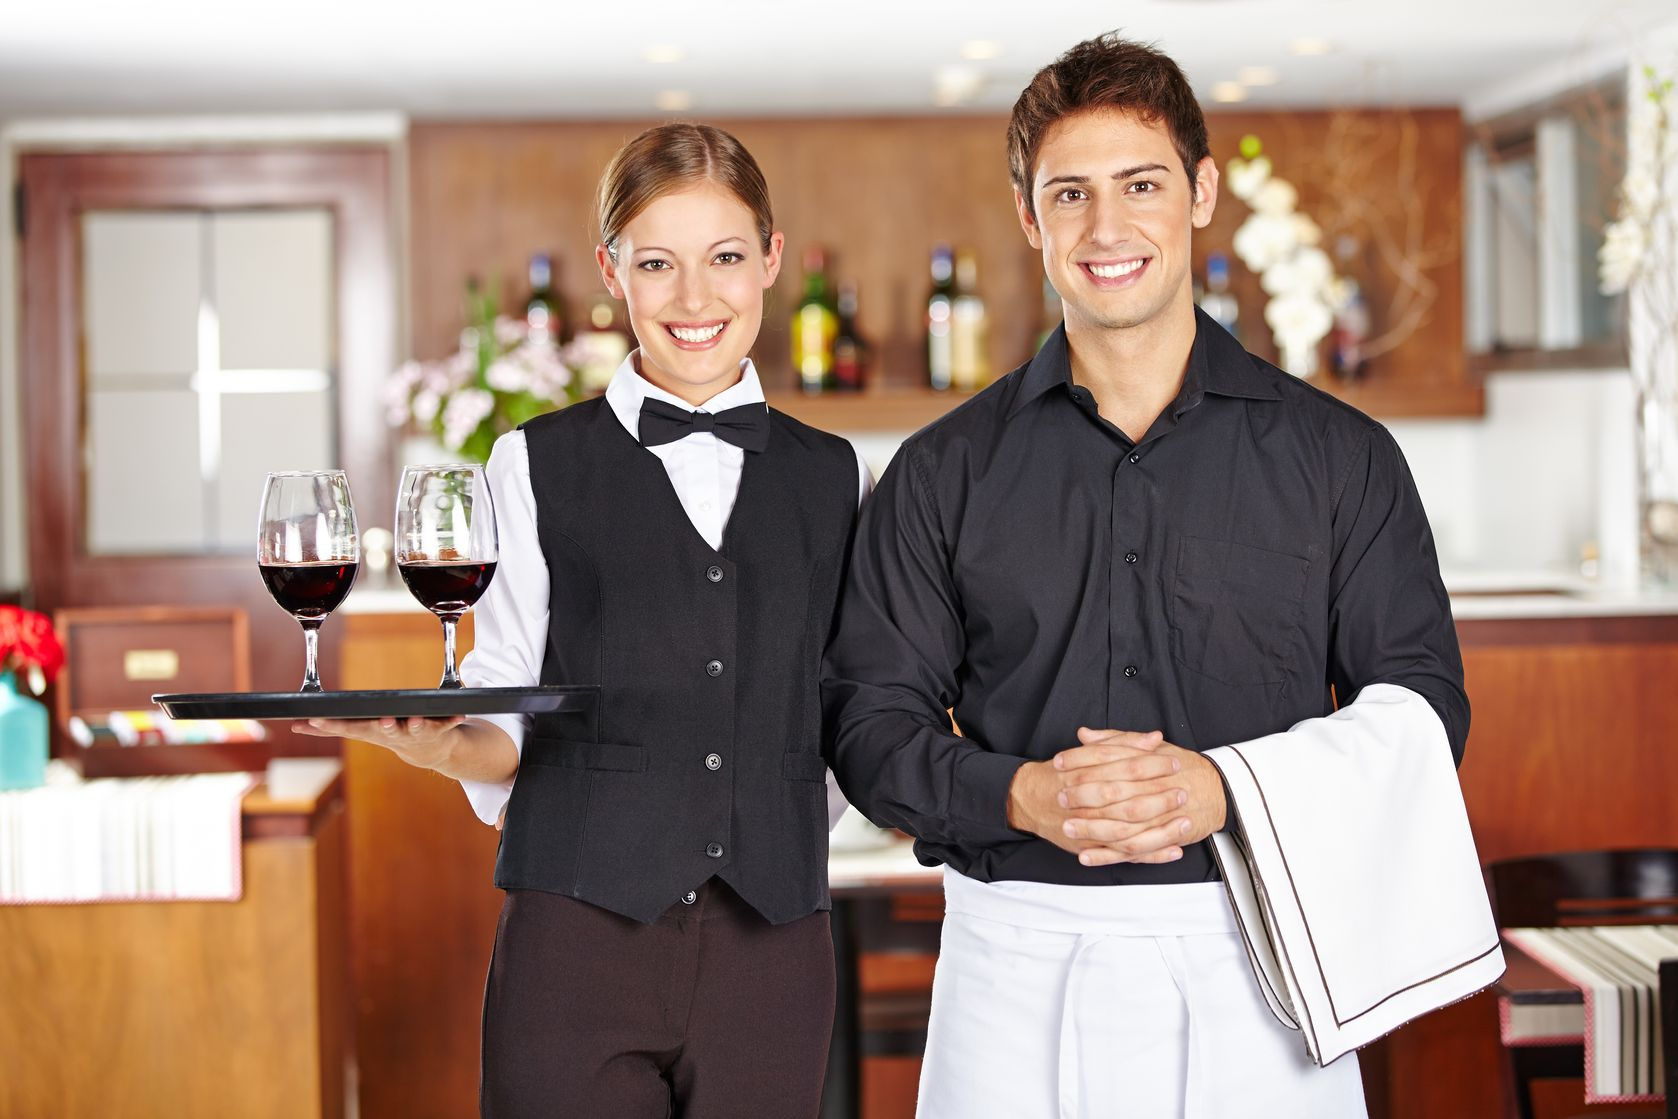 Hospitality and Catering Business for sale in Rockhampton